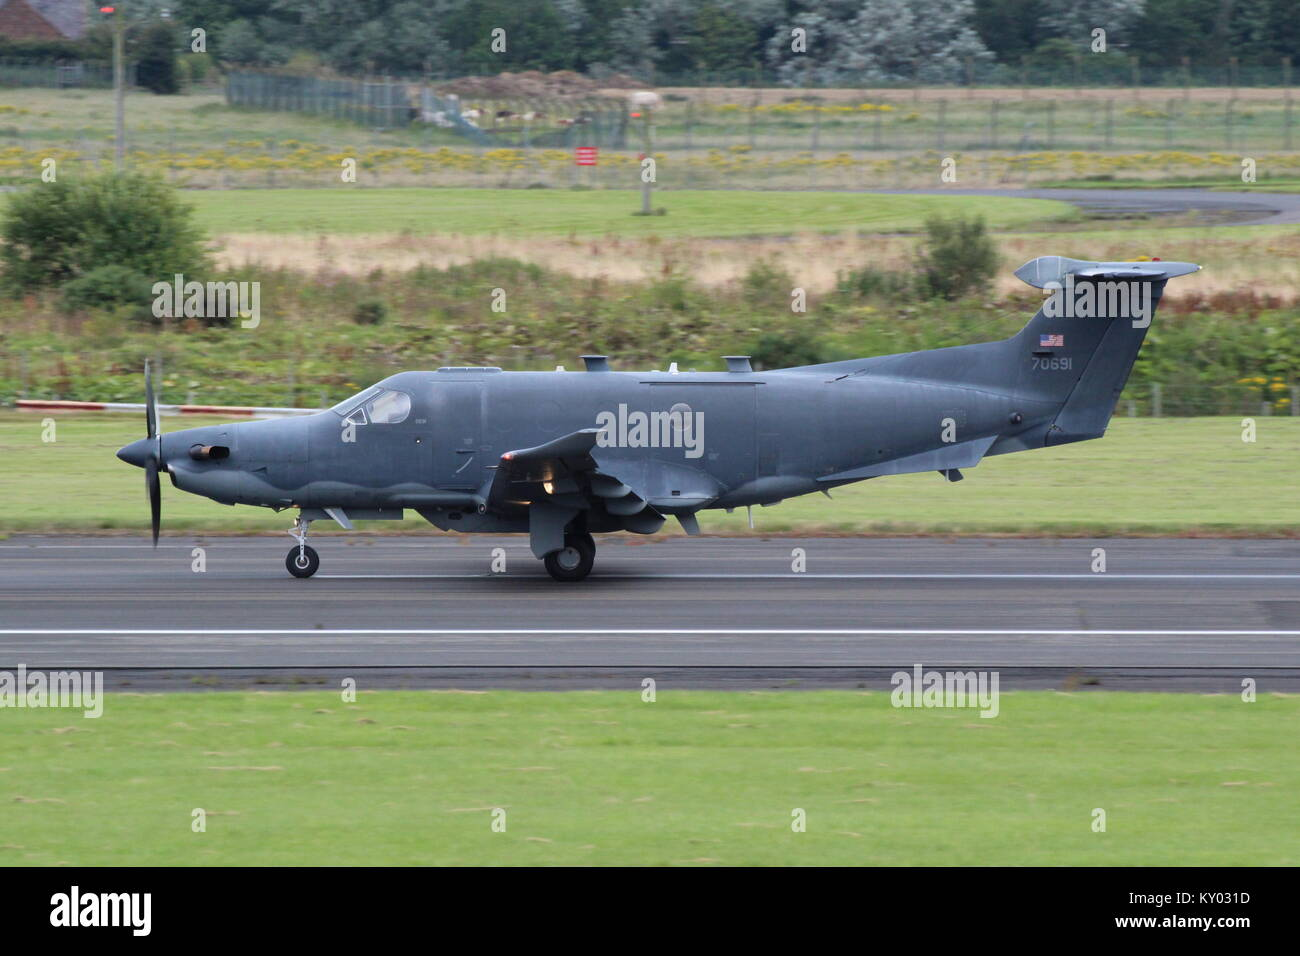 07-0691, a Pilatus U-28A operated by the United States Air Force, at Prestwick International Airport in Ayrshire. Stock Photo